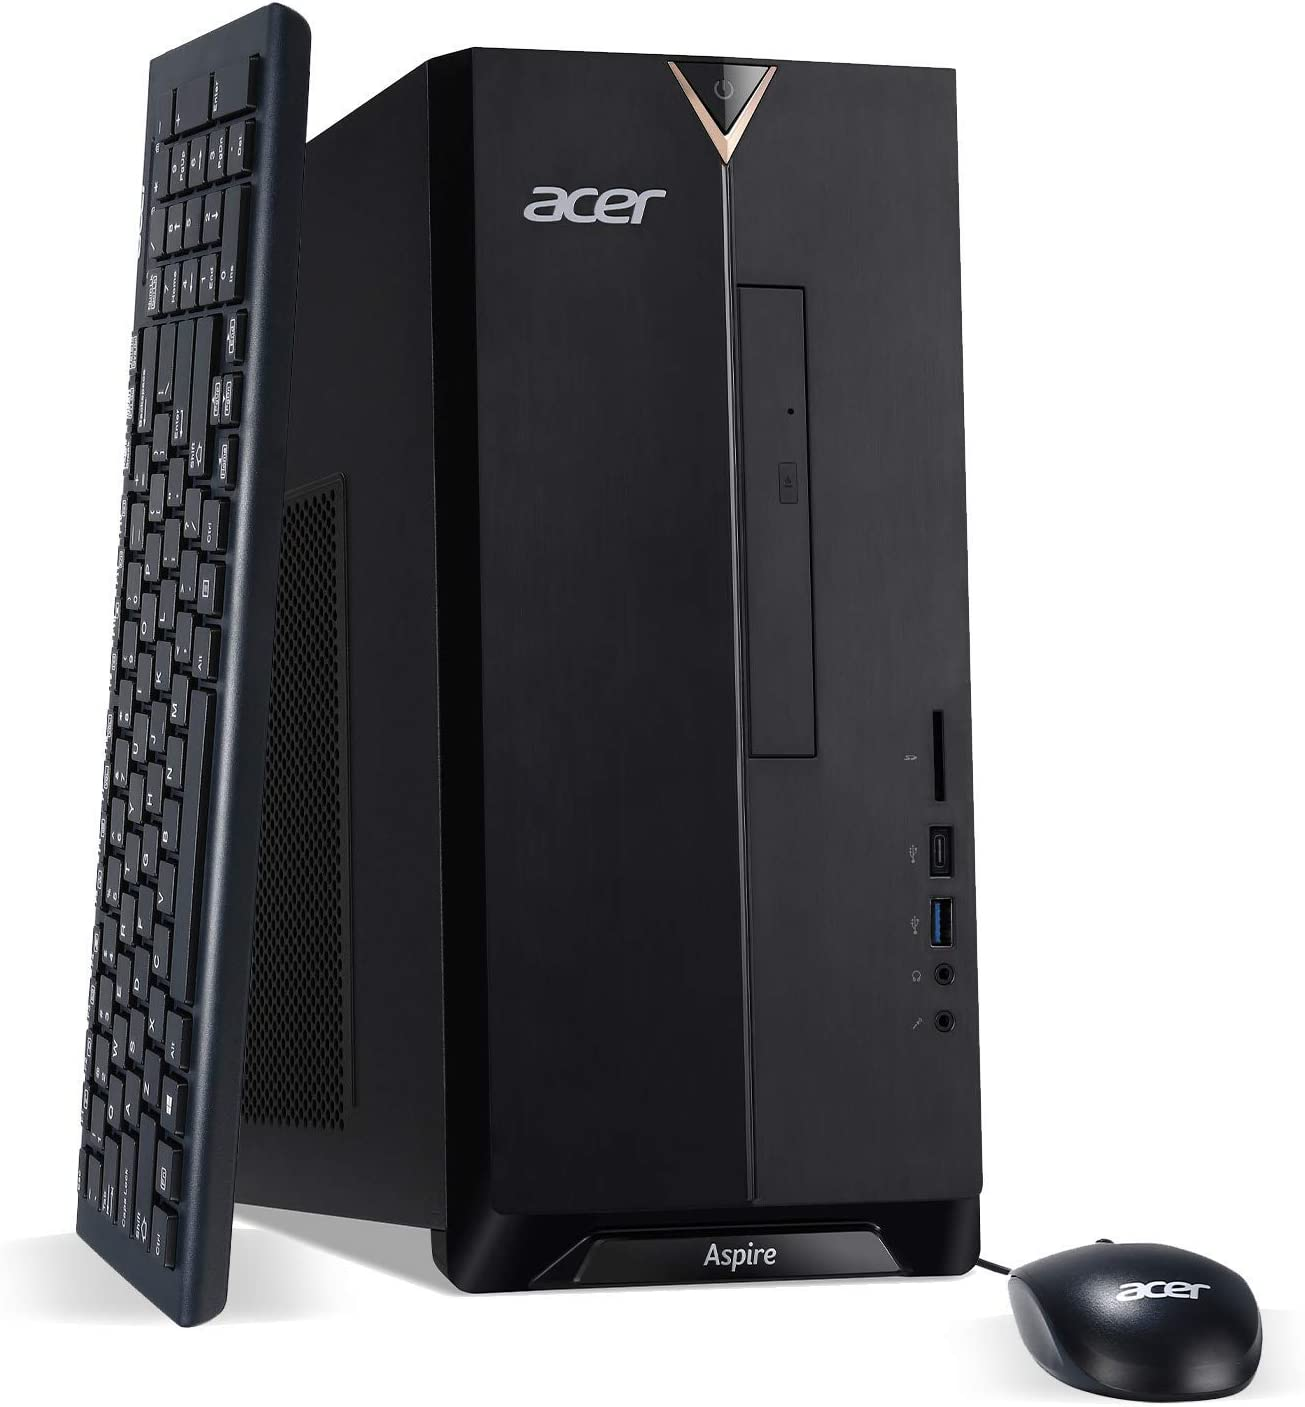 Acer Aspire TC-895-UA91 Desktop, 10th Gen Intel Core i3-10100 4-Core Processor, 8GB 2666MHz DDR4, 512GB NVMe M.2 SSD, 8X DVD, 802.11ax WiFi 6, USB 3.2 Type C, Windows 10 Home